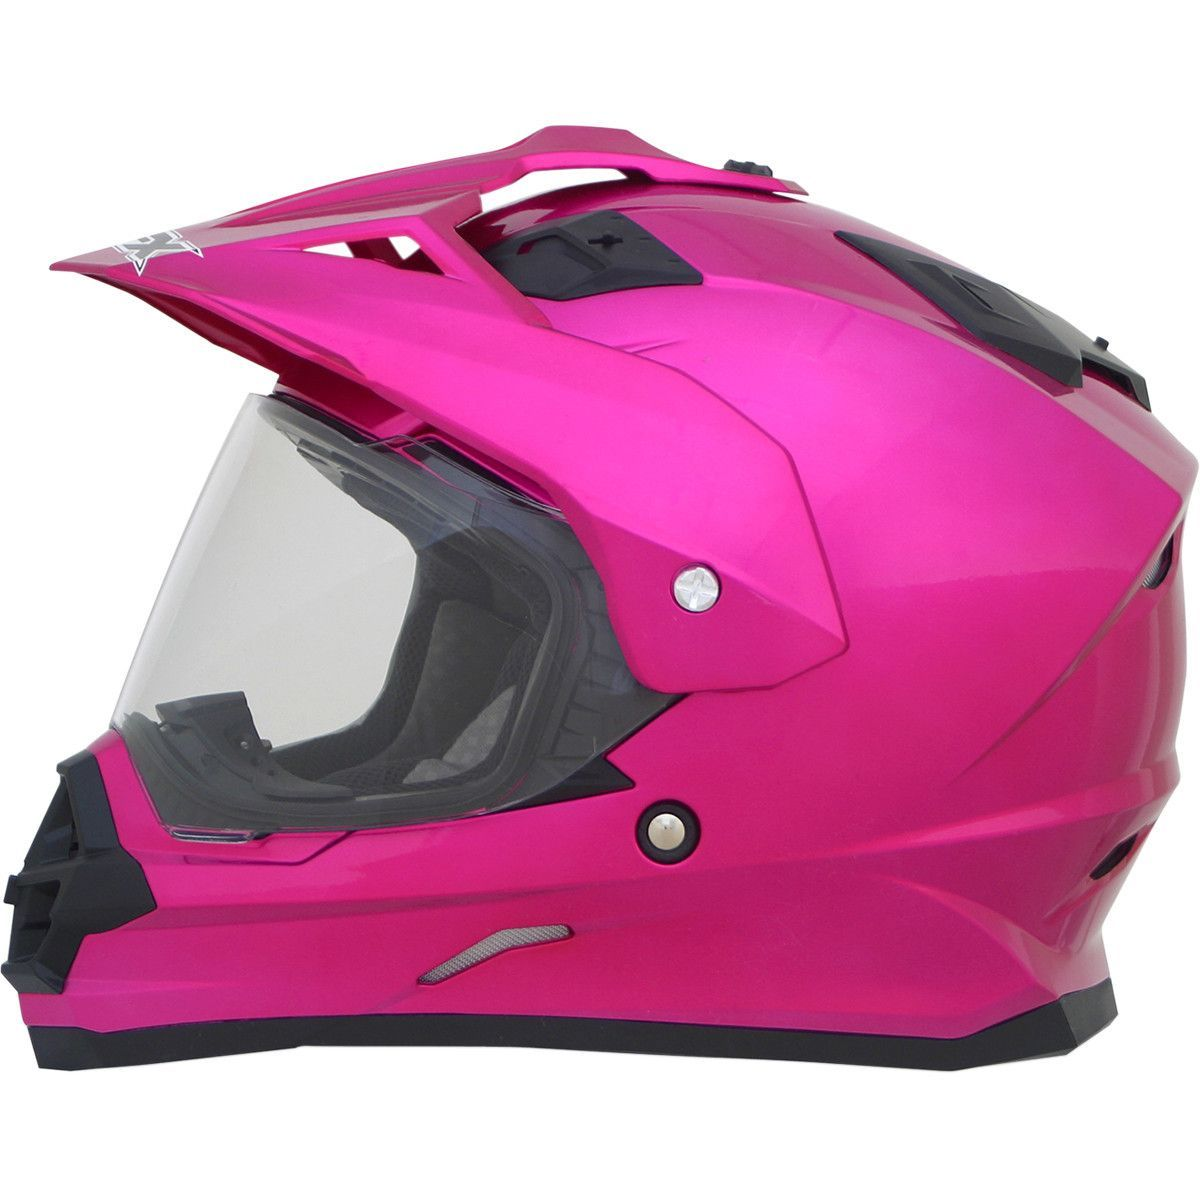 motorcycle safety gear for beginners